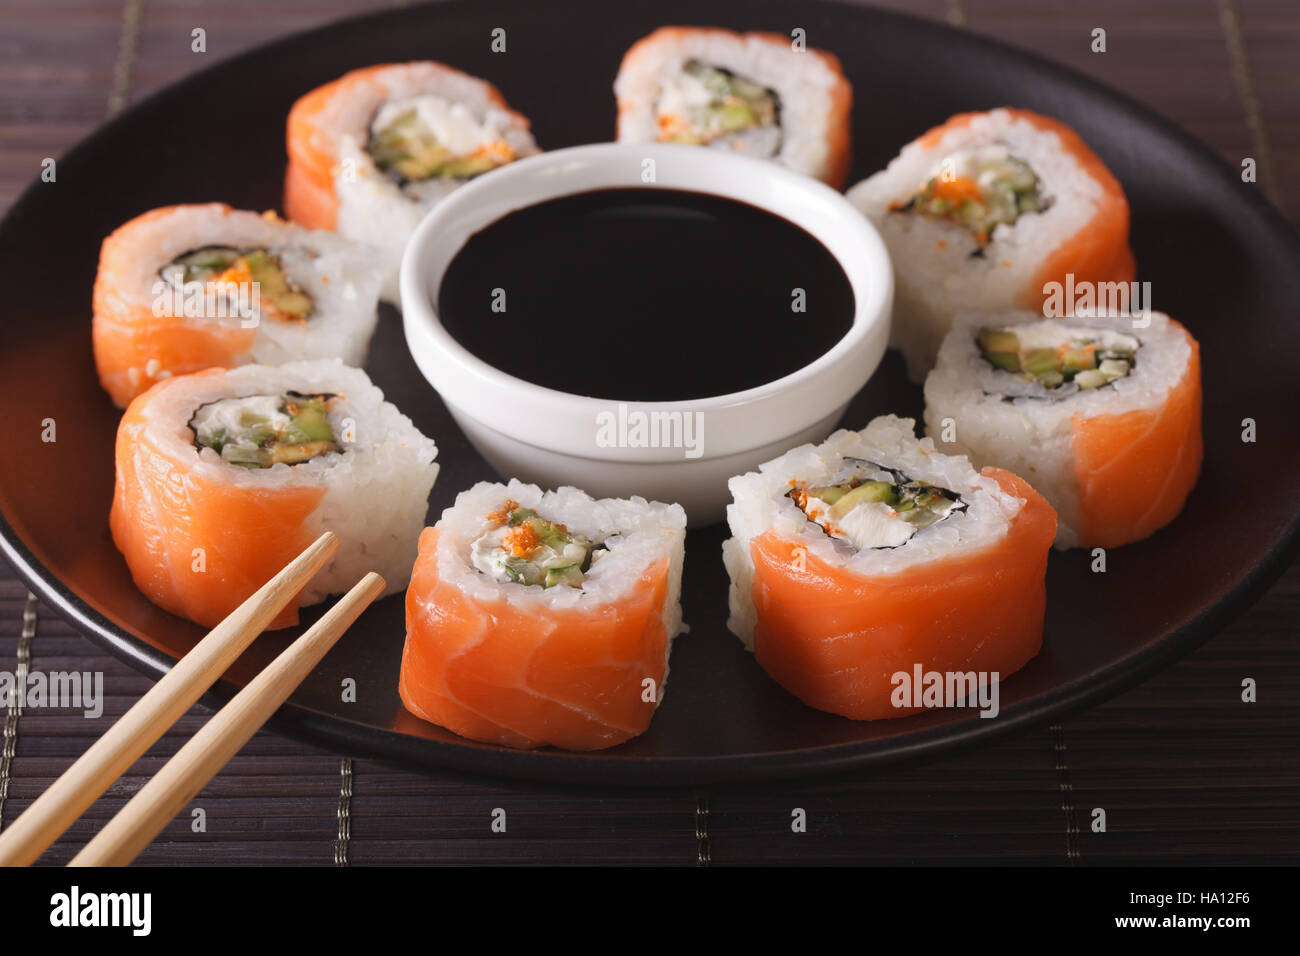 Sushi roll philadelphia and soy sauce , closeup on a plate. Horizontal - Stock Image